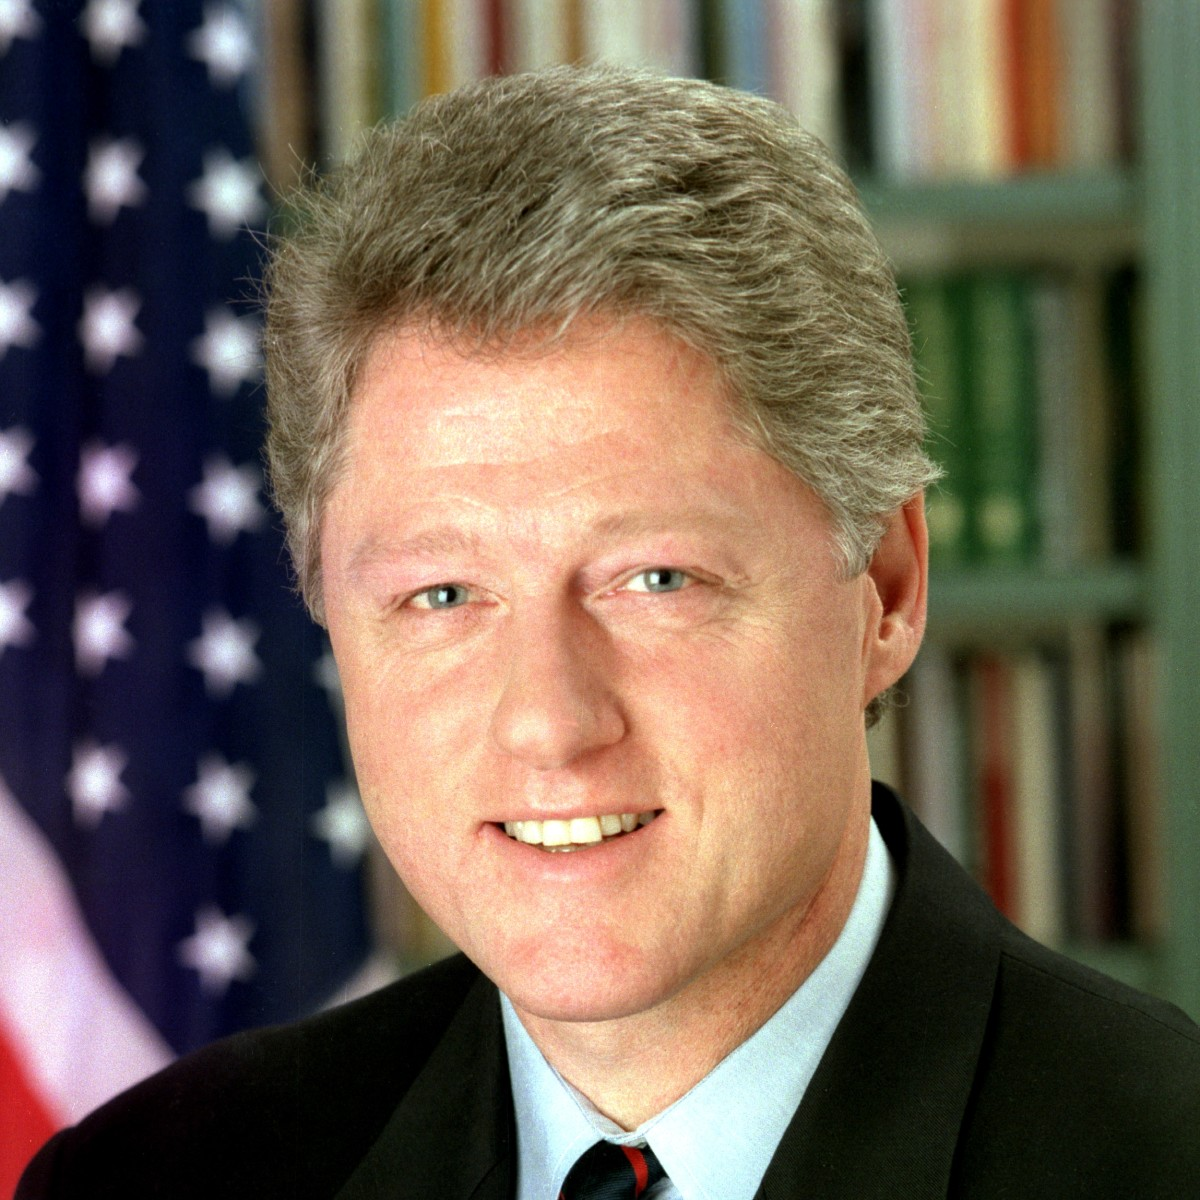 """There's a government inside the government, and I don't control it."" - President Bill Clinton"